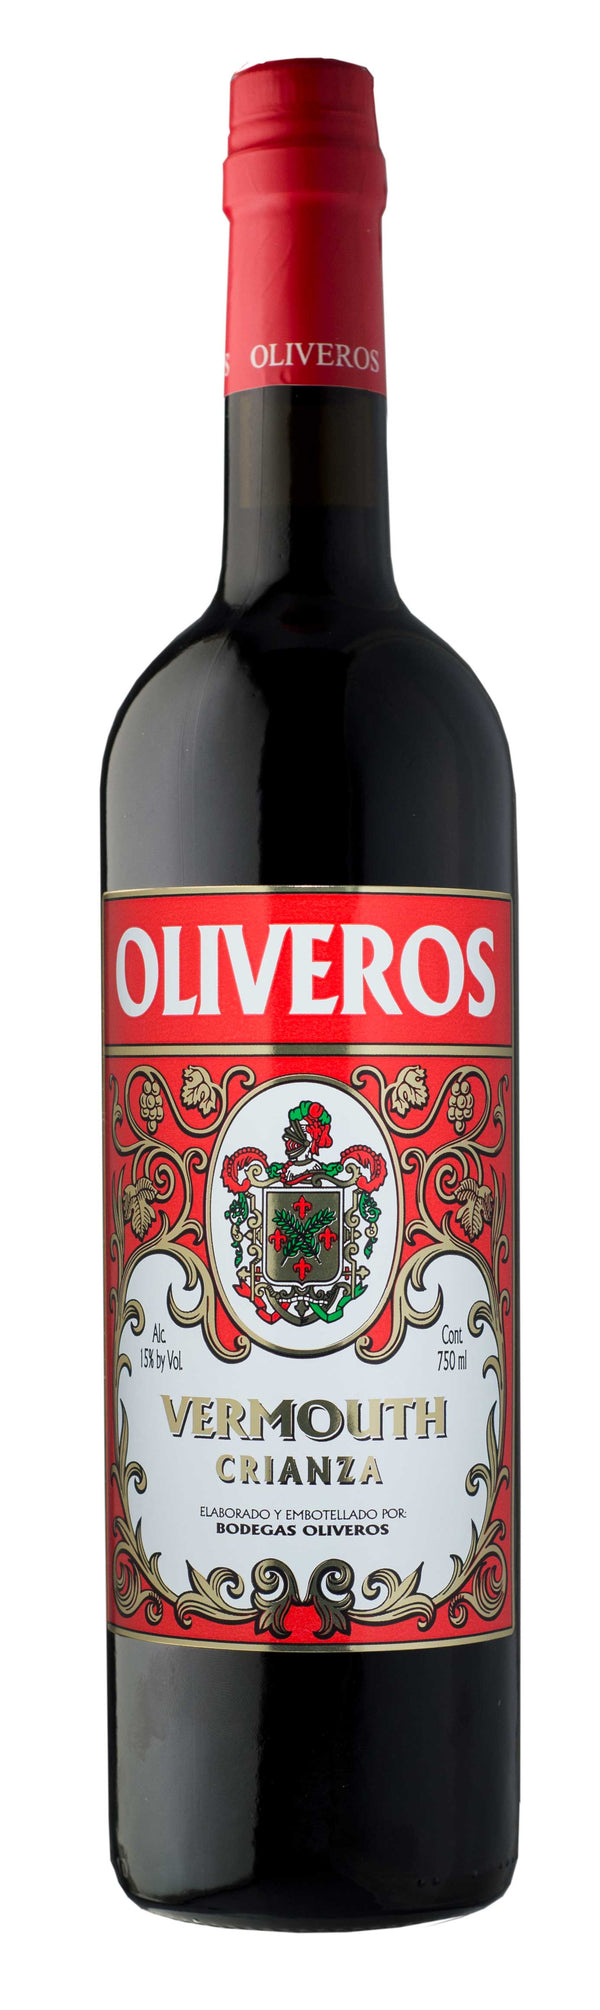 Bodegas Oliveros Vermouth - Available at Wooden Cork